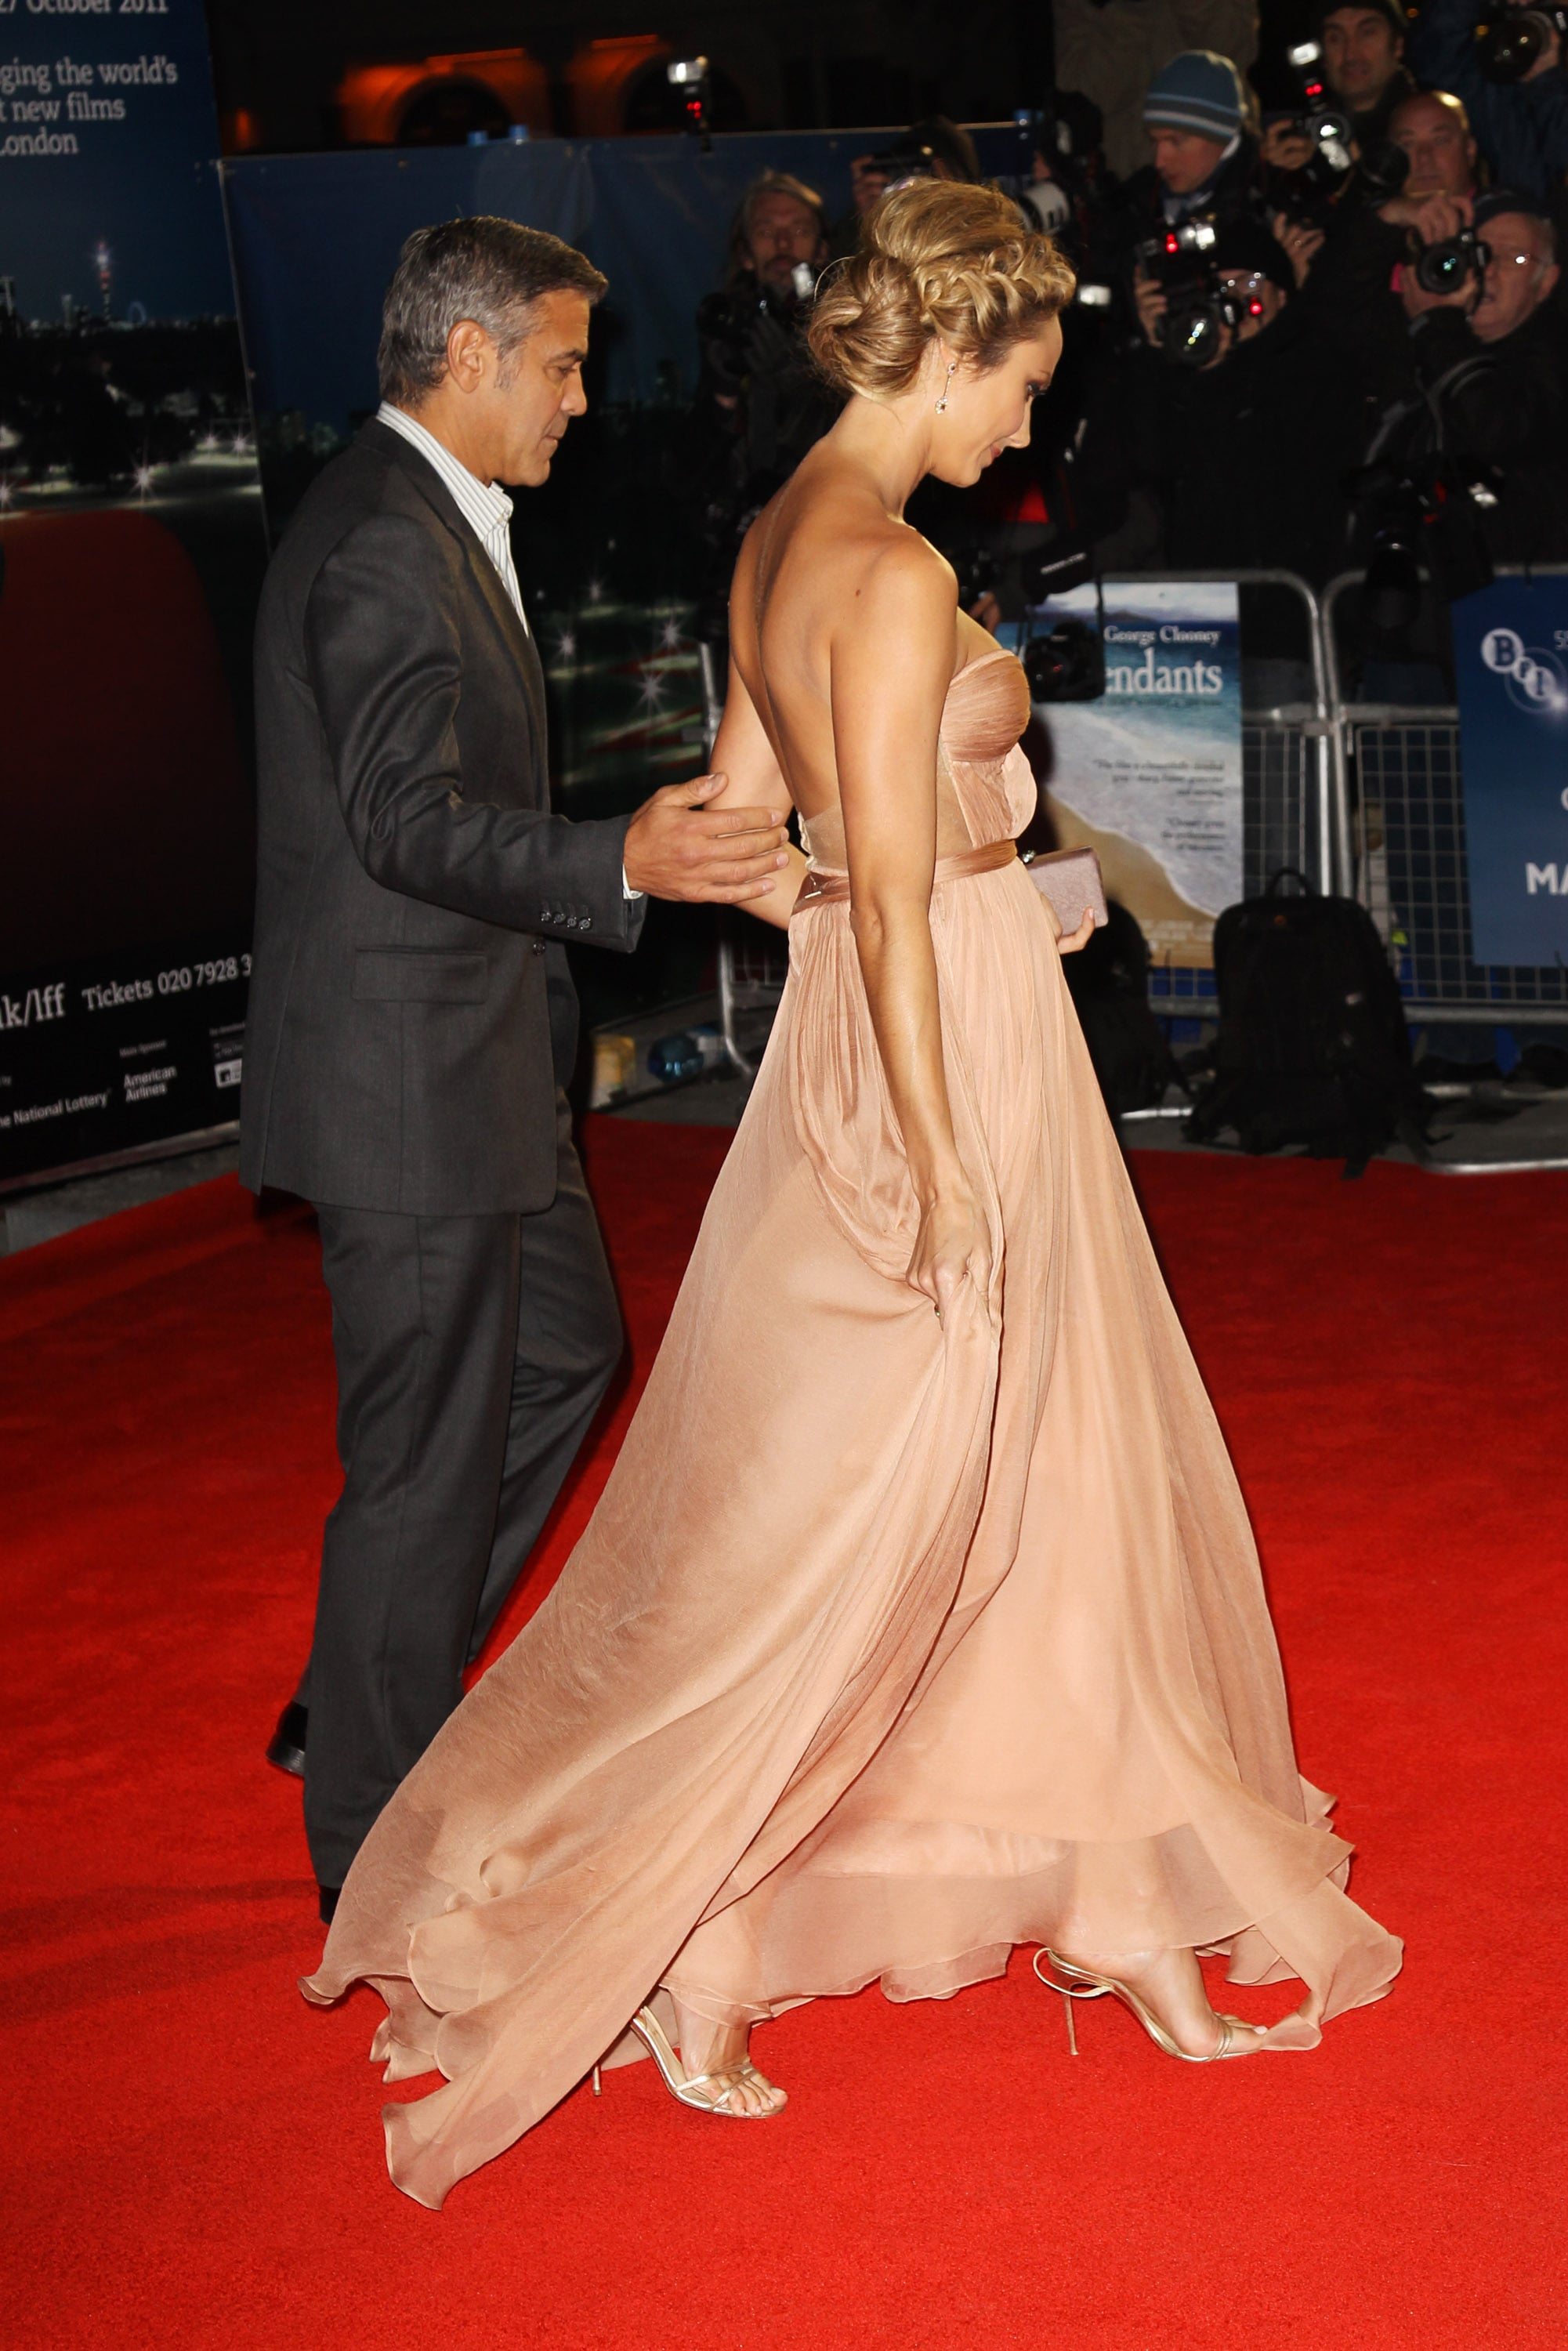 George Clooney and Stacy Keibler at The Descendants premiere in London.